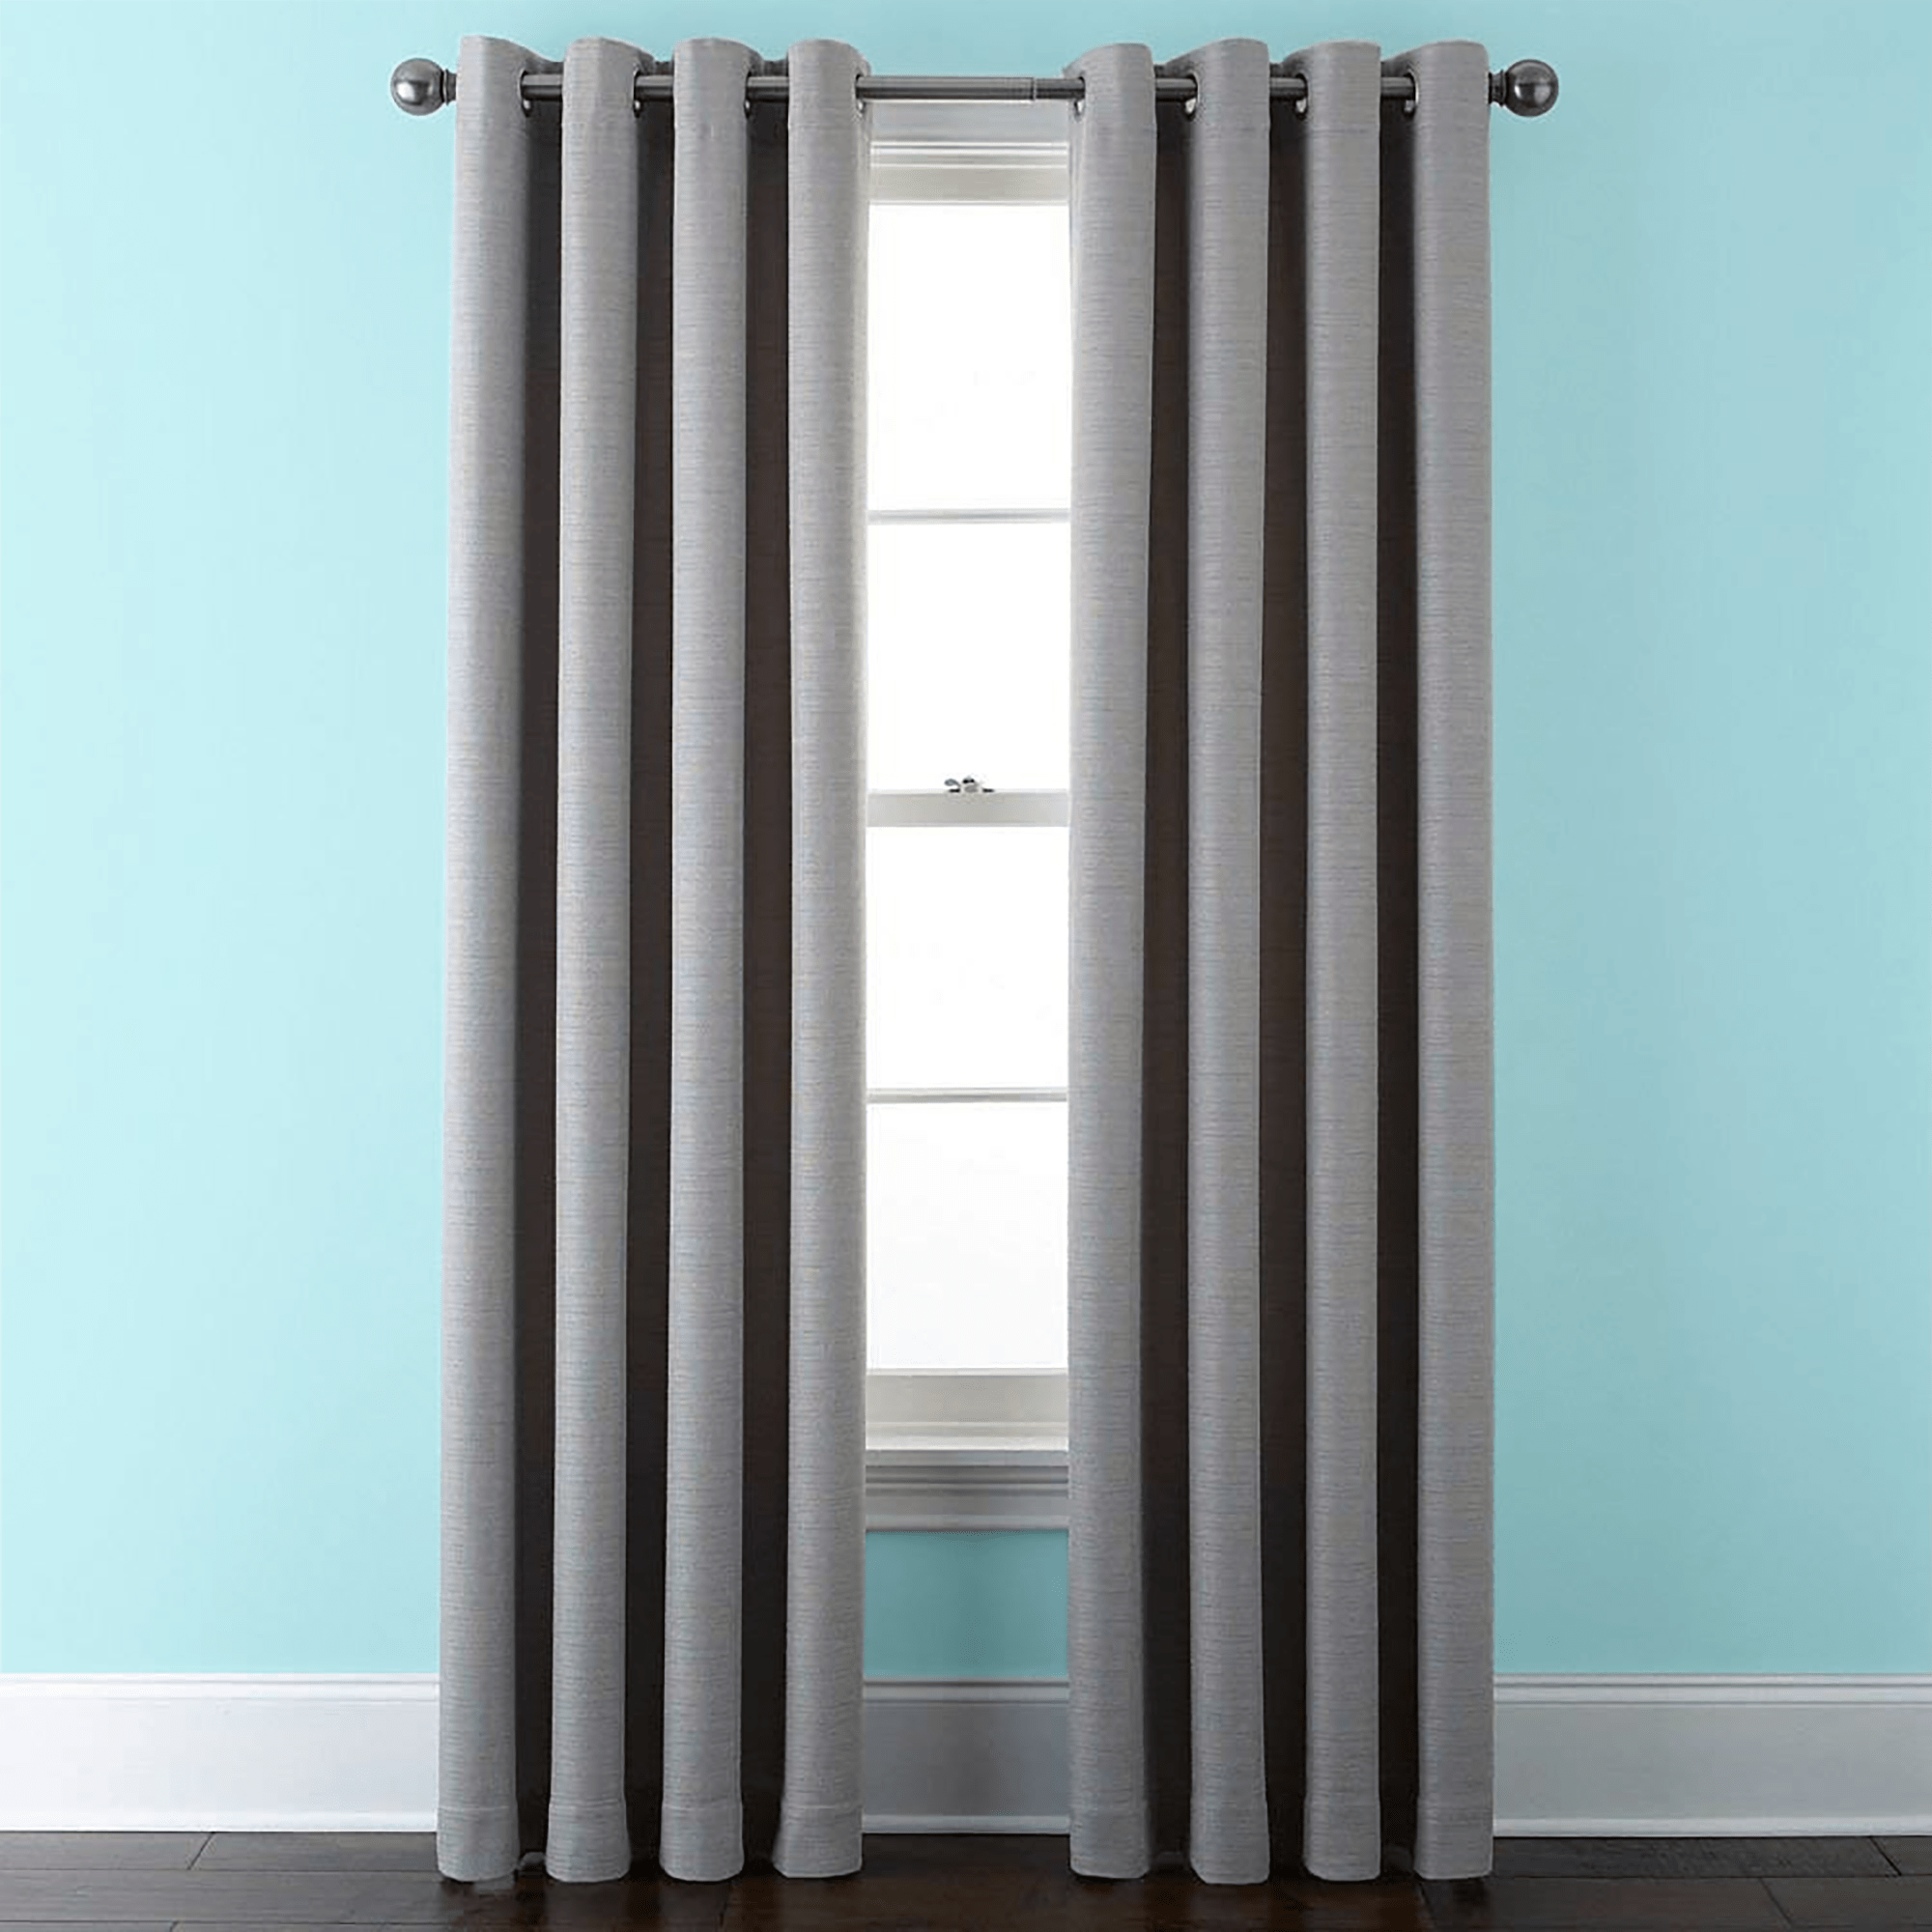 6 gorgeous blackout curtains that will actually improve your sleep